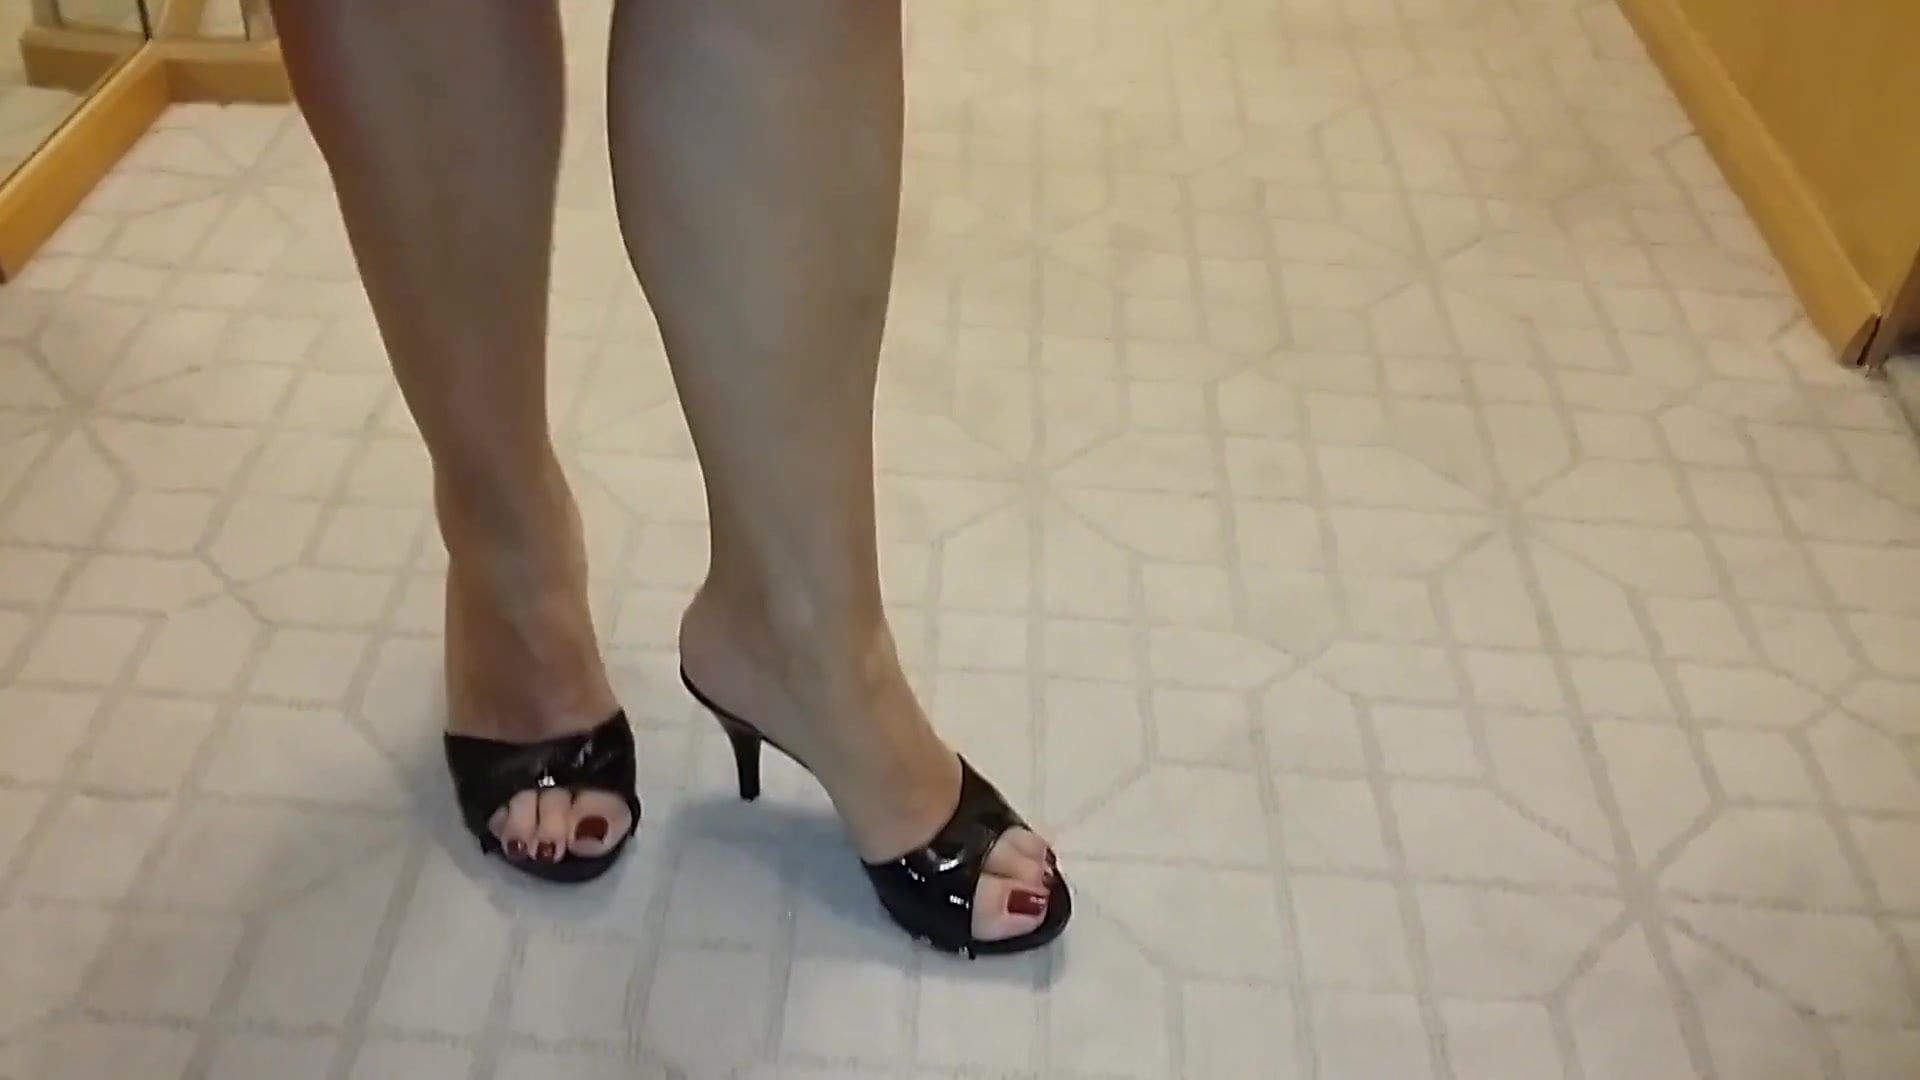 Mulesfree Hd Online Dvd Heel Mature Feet Porn 2hywed9i High B0 xdBerQCoW